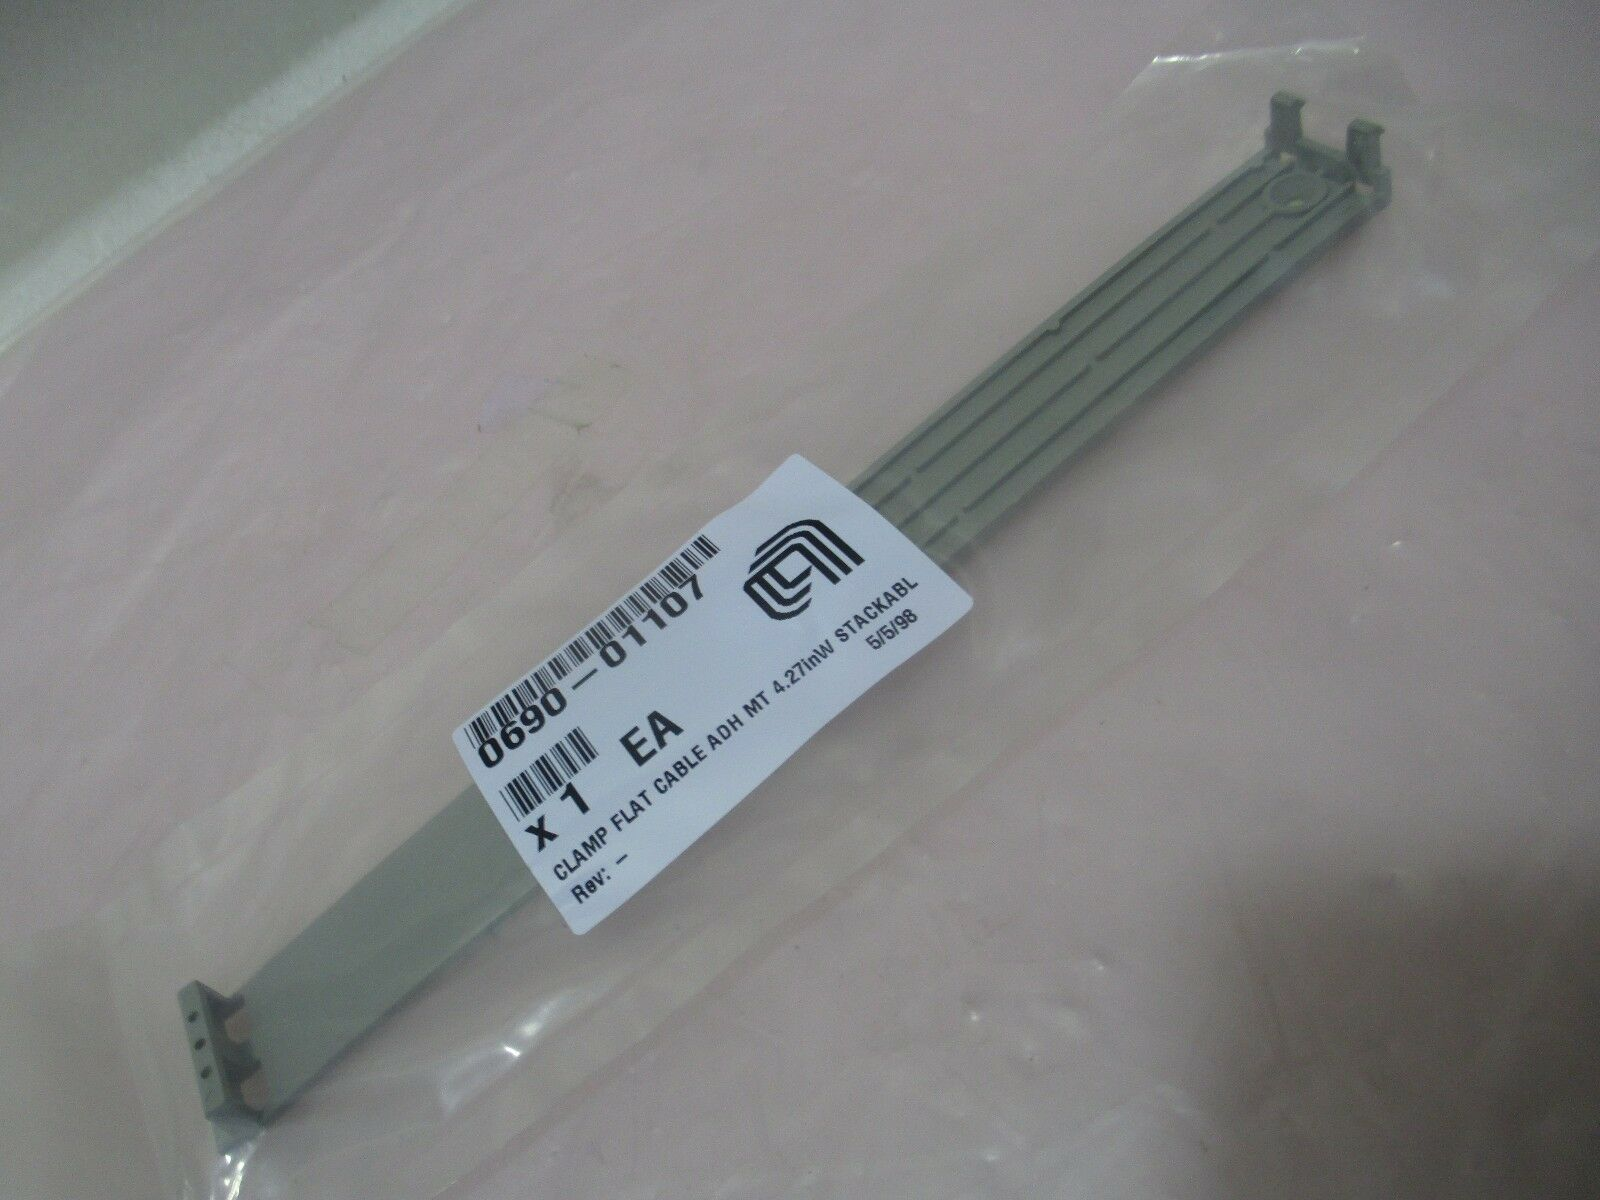 AMAT 0690-01107 Clamp Flat Cable ADH MT 4.27in W Stackable, 421631